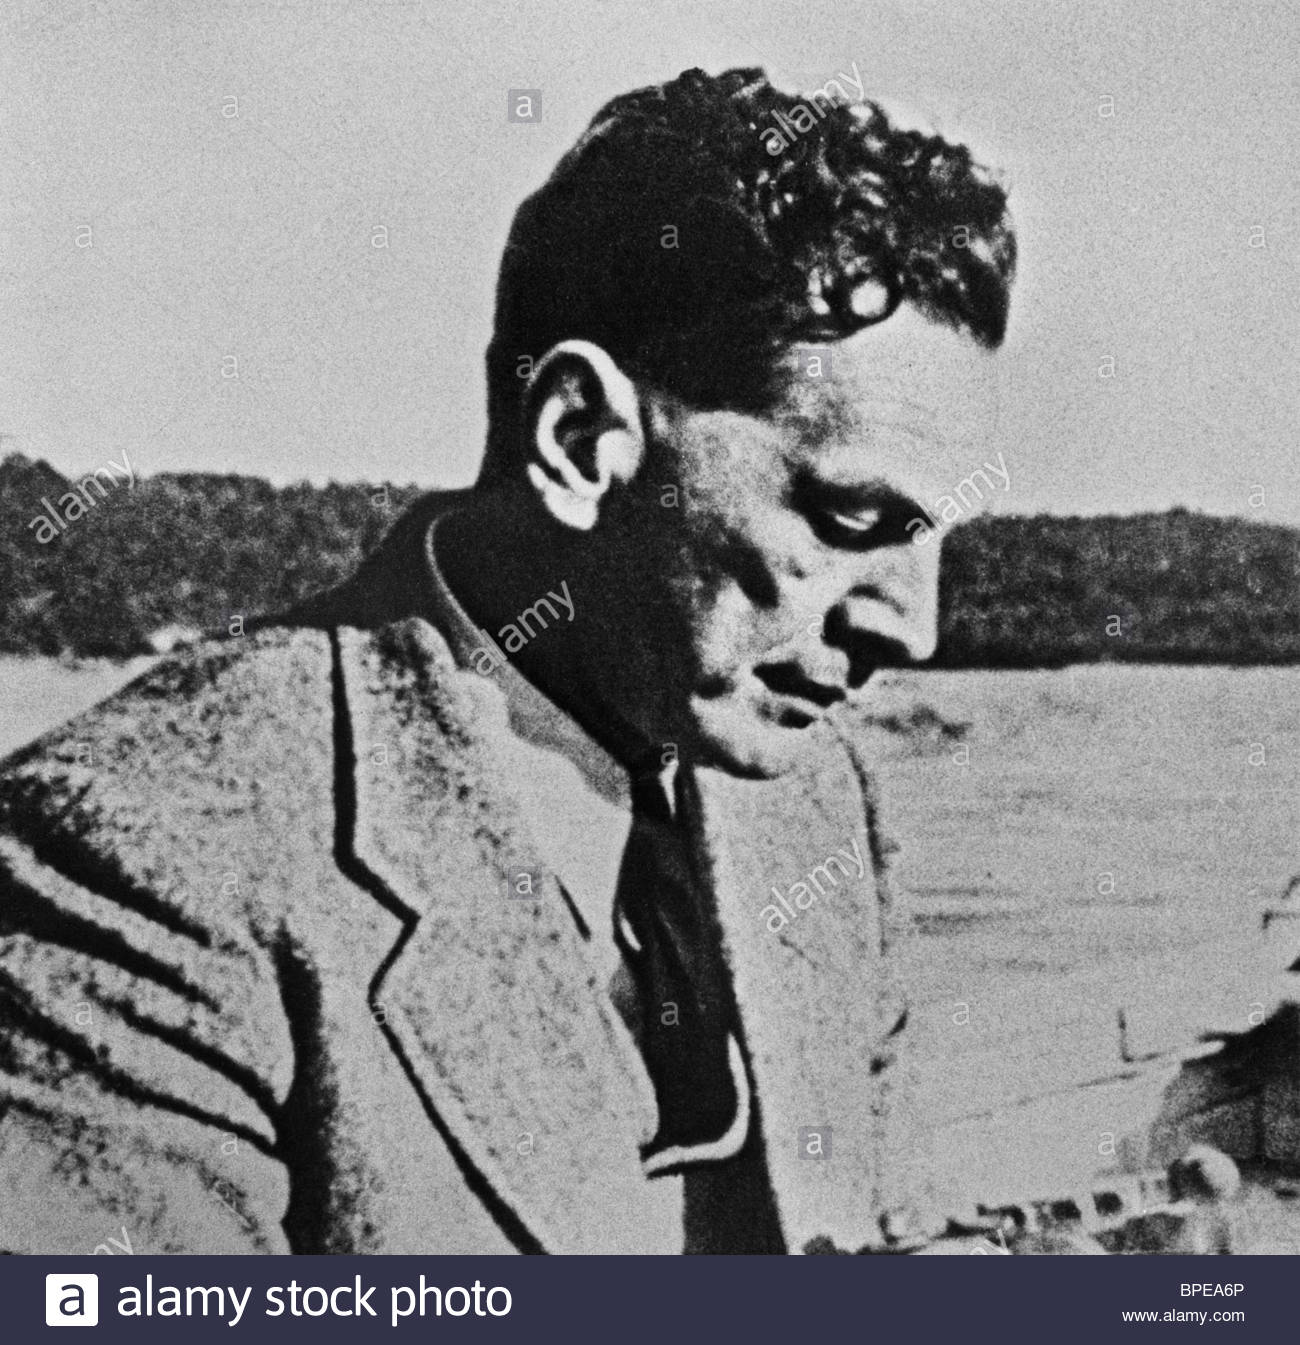 Soviet spy Richard Sorge, 1940 - Stock Image